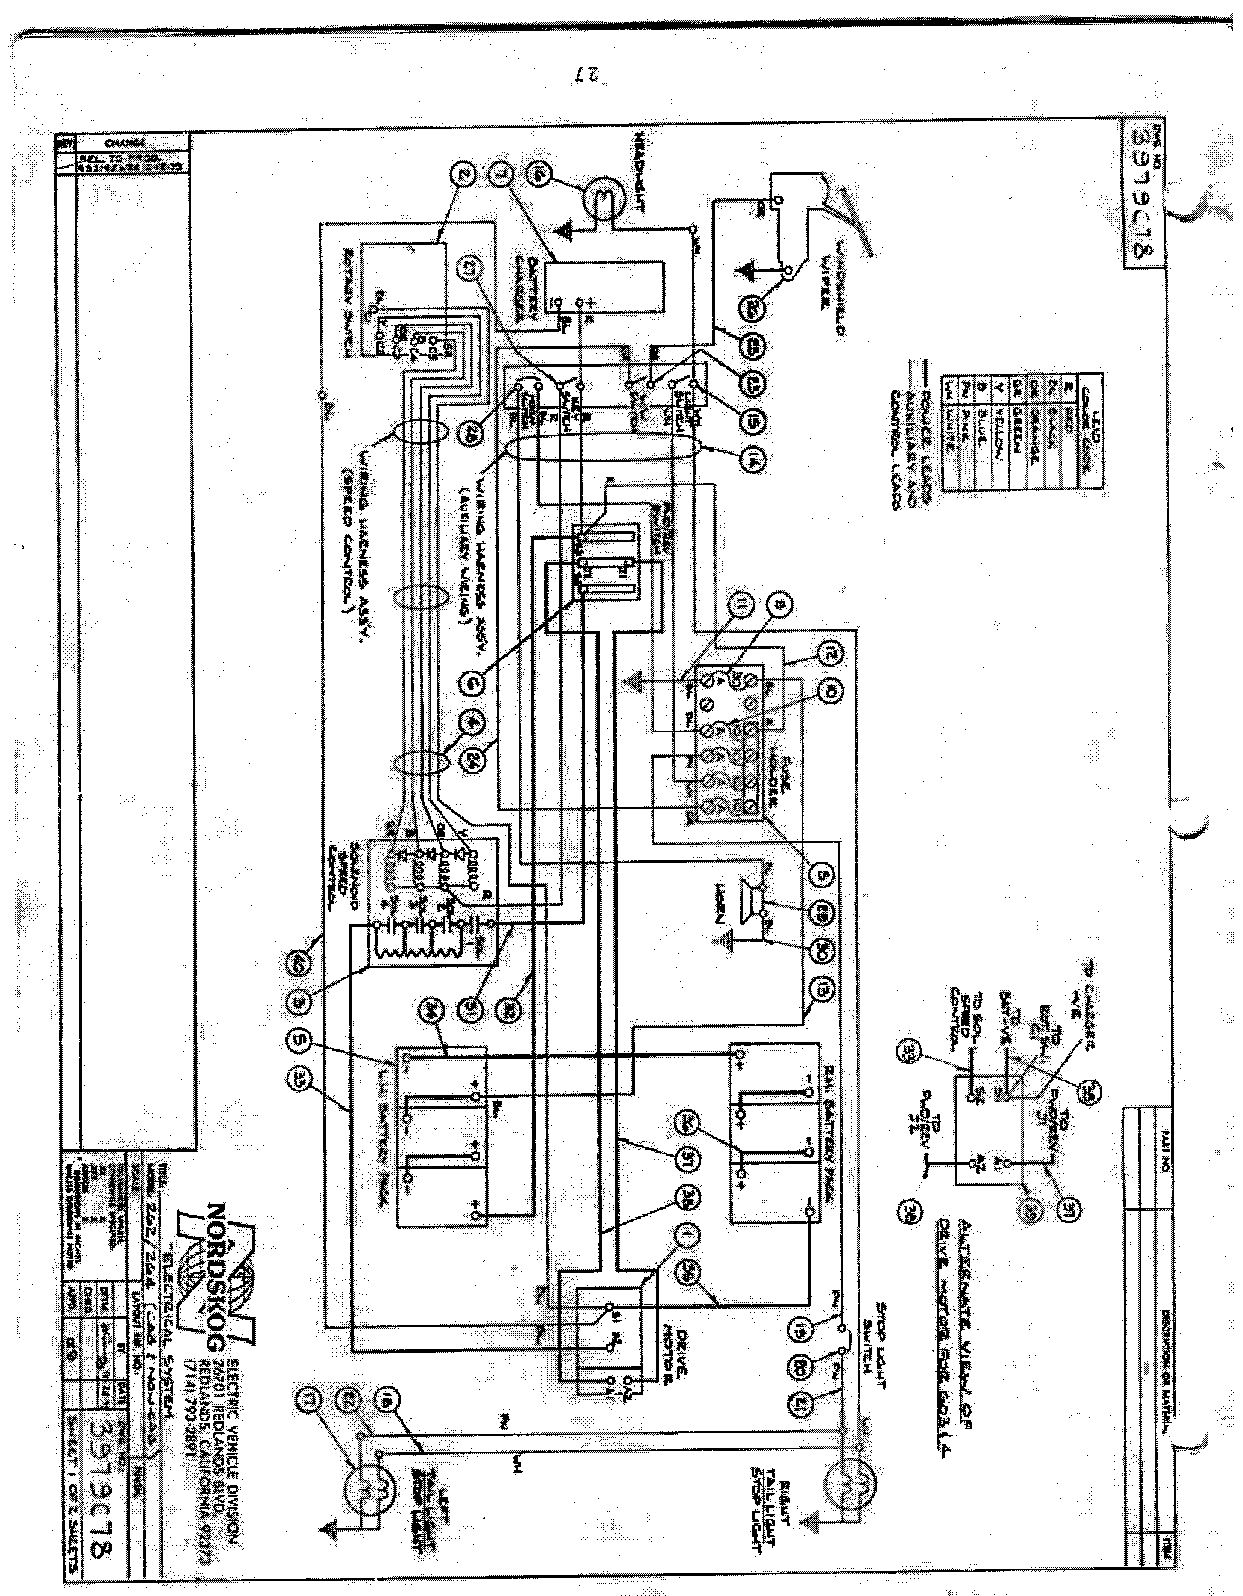 Nordskog262_264 vintagegolfcartparts com westinghouse golf cart wiring diagram at crackthecode.co